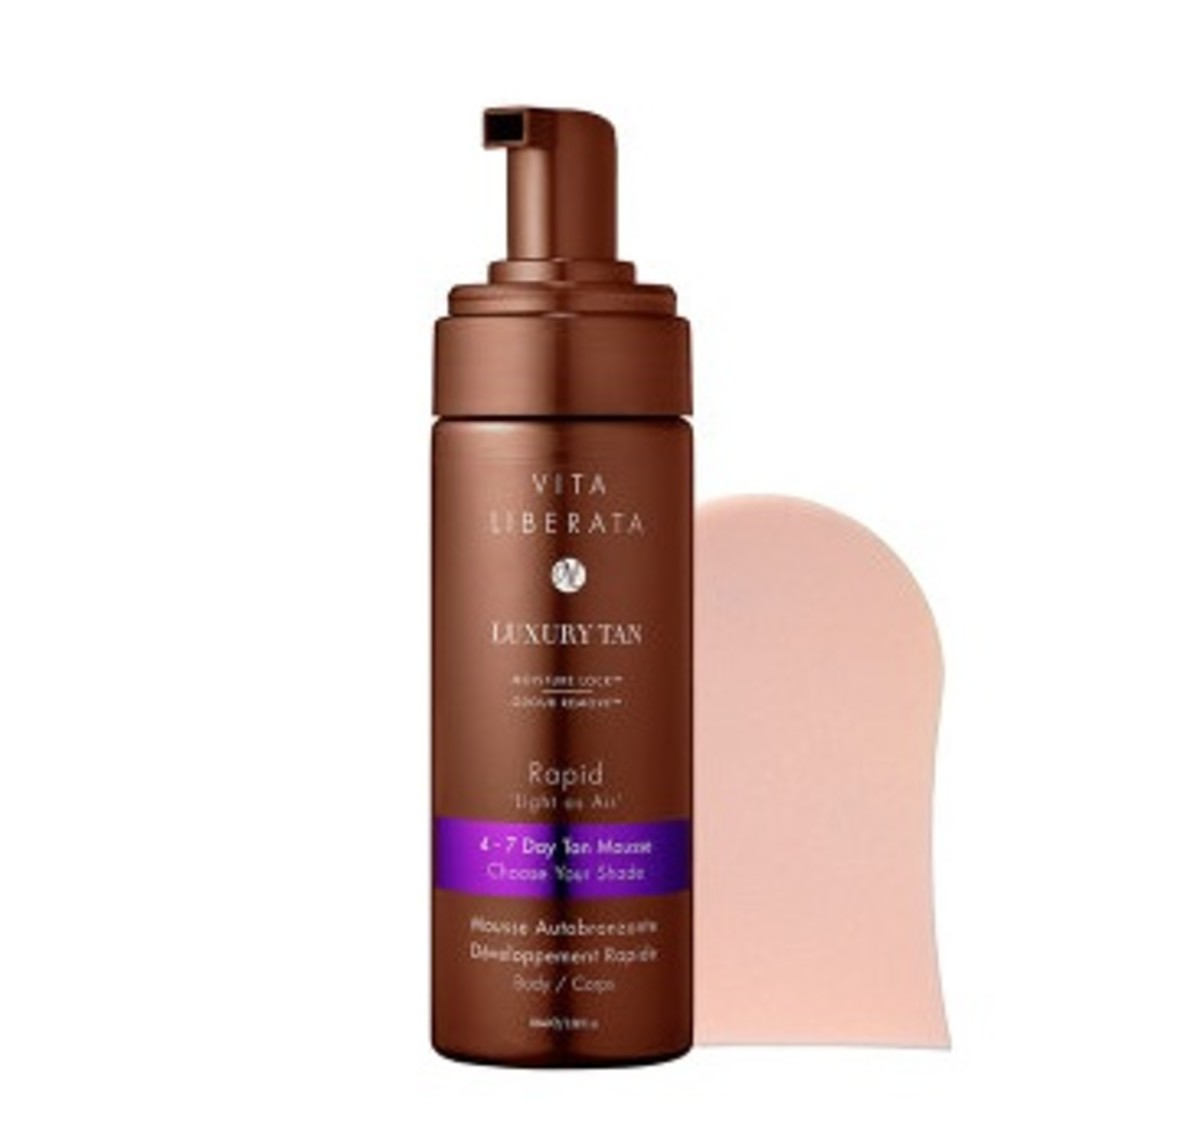 Rapid Tan Mousse